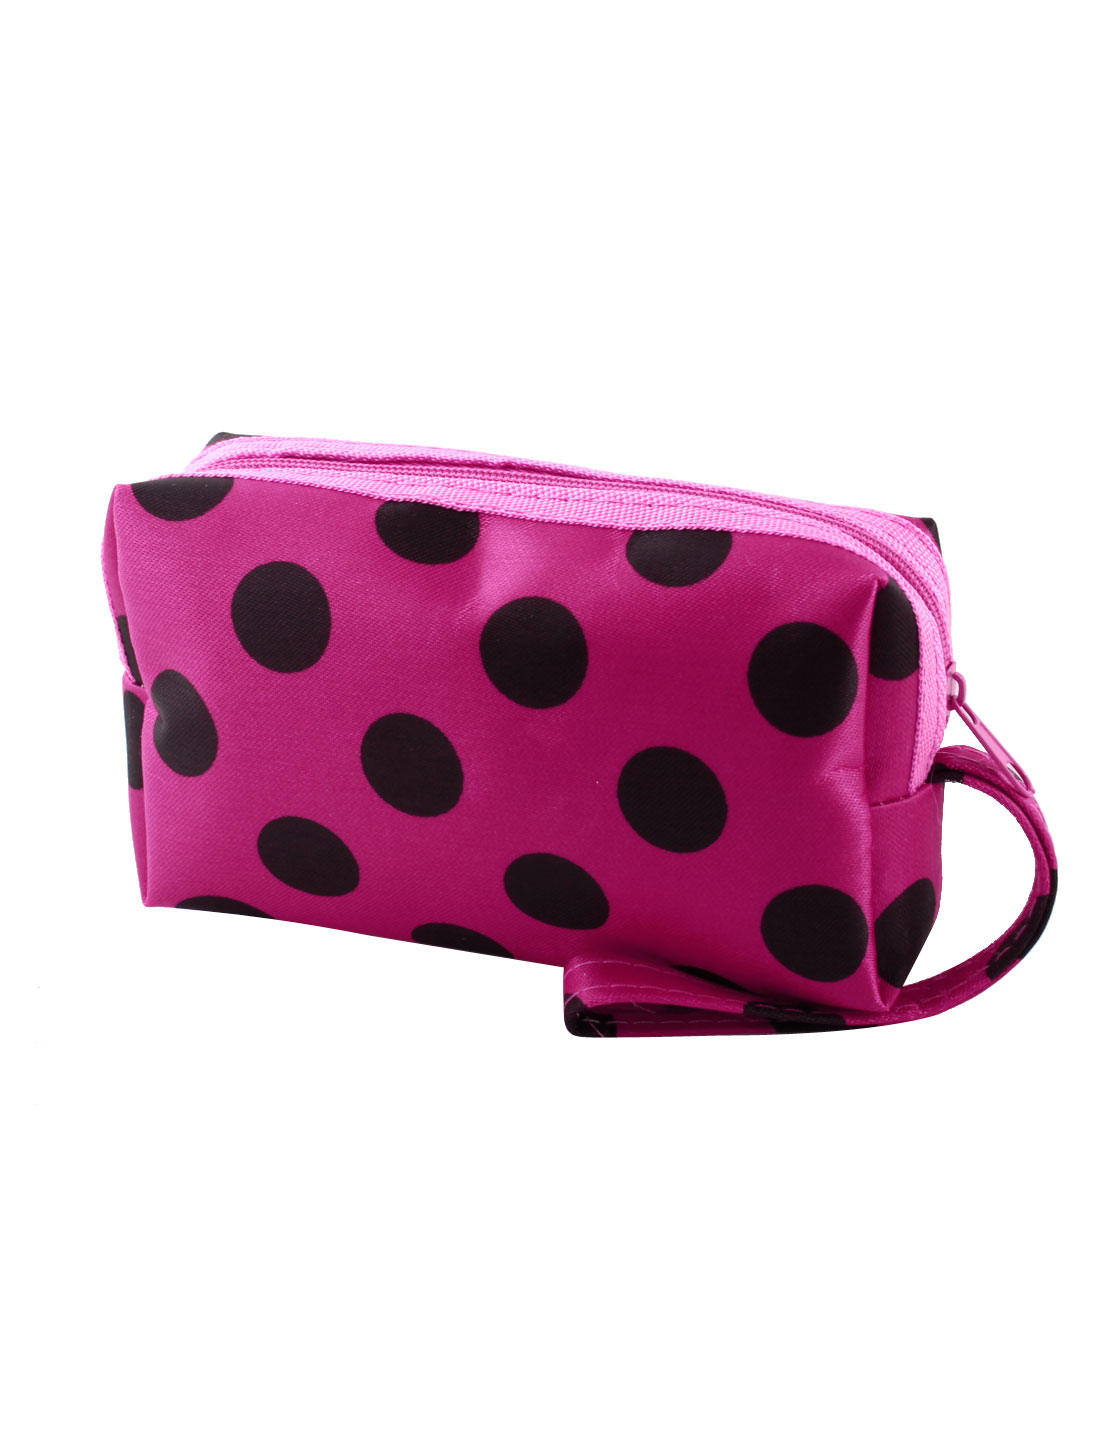 Black Dotted Pattern Zipper Closuer Wallet Change Pouch Purse Fuchsia